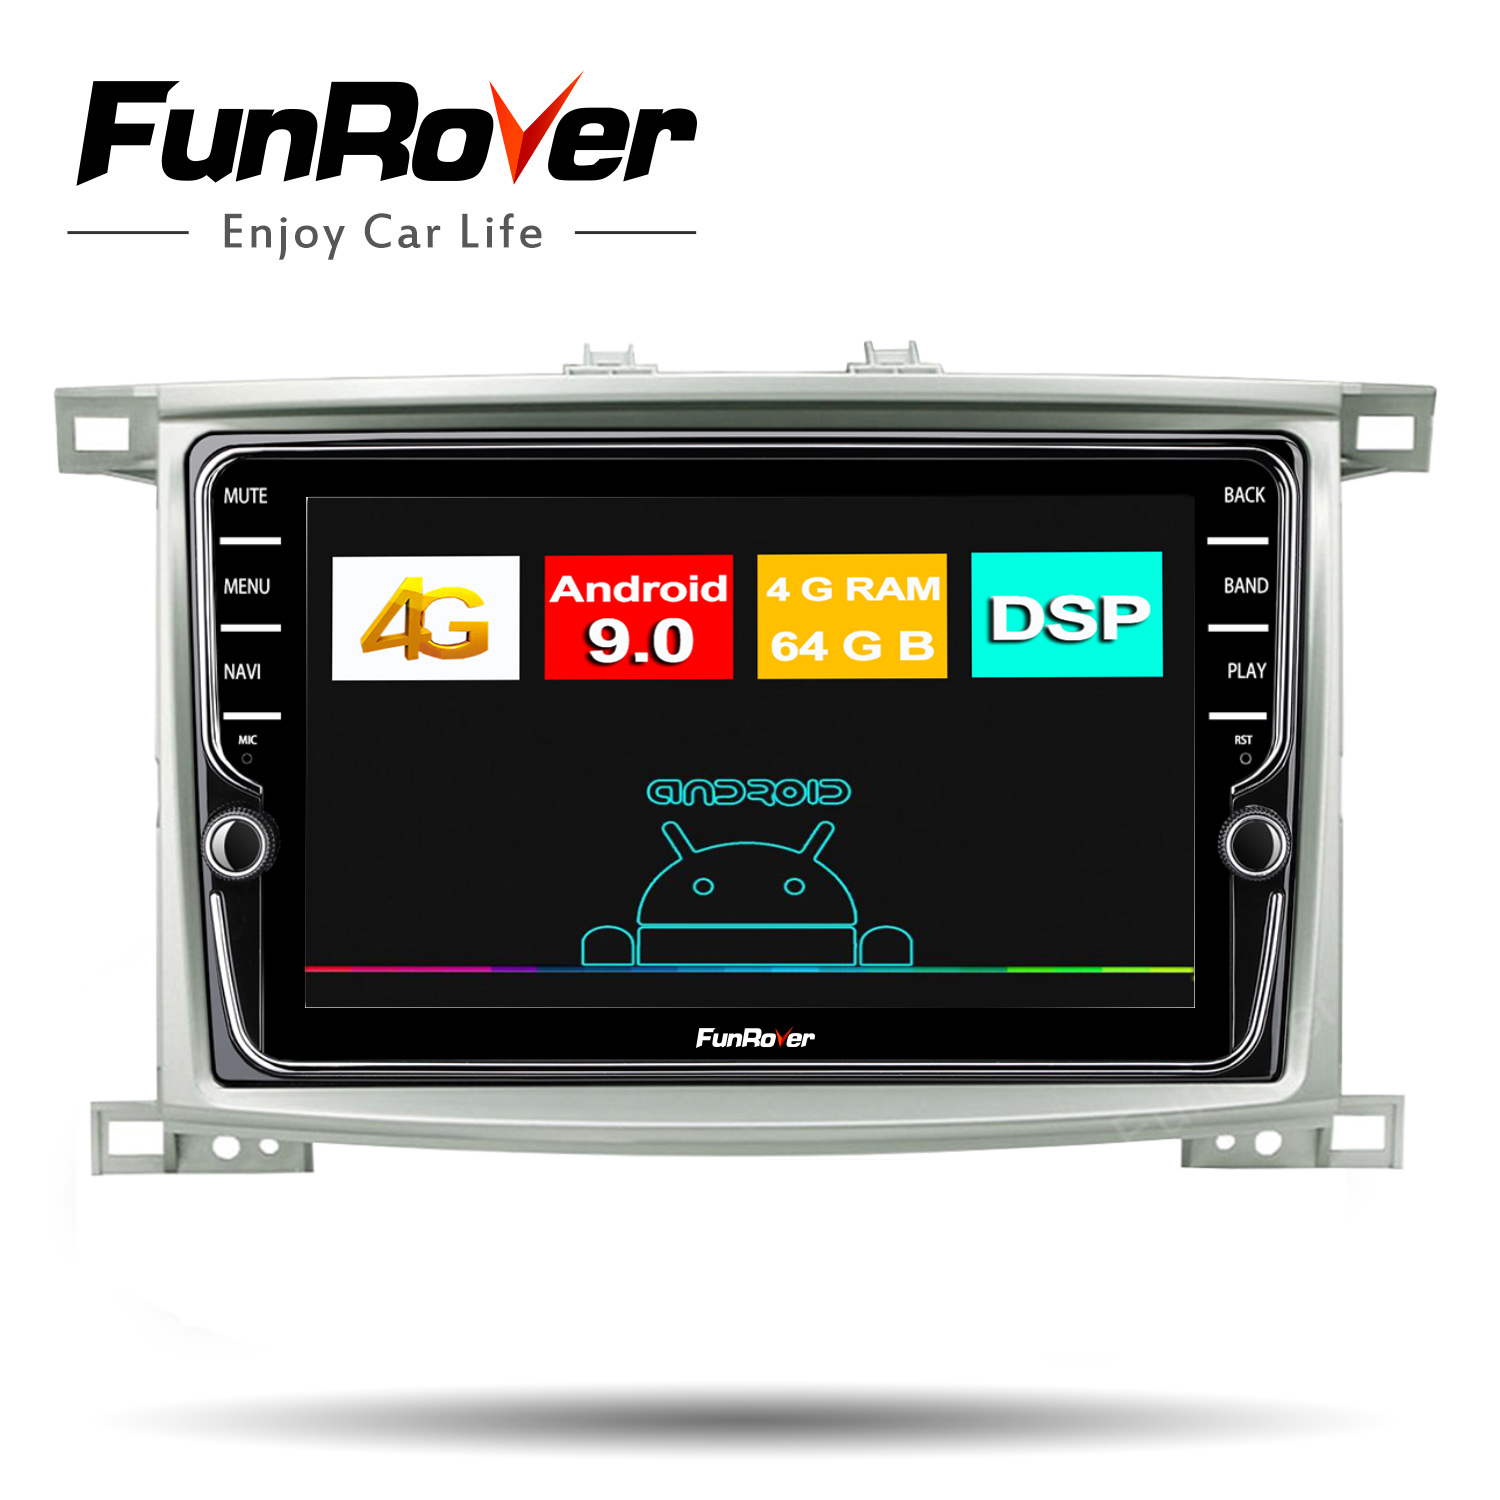 Funrover Android 9.0 Octa core Car DVD multimedia Player for <font><b>Toyota</b></font> <font><b>LC</b></font> <font><b>100</b></font> Land Cruiser <font><b>100</b></font> 1998 -2006 Radio GPS DSP 4G 64G LTE image